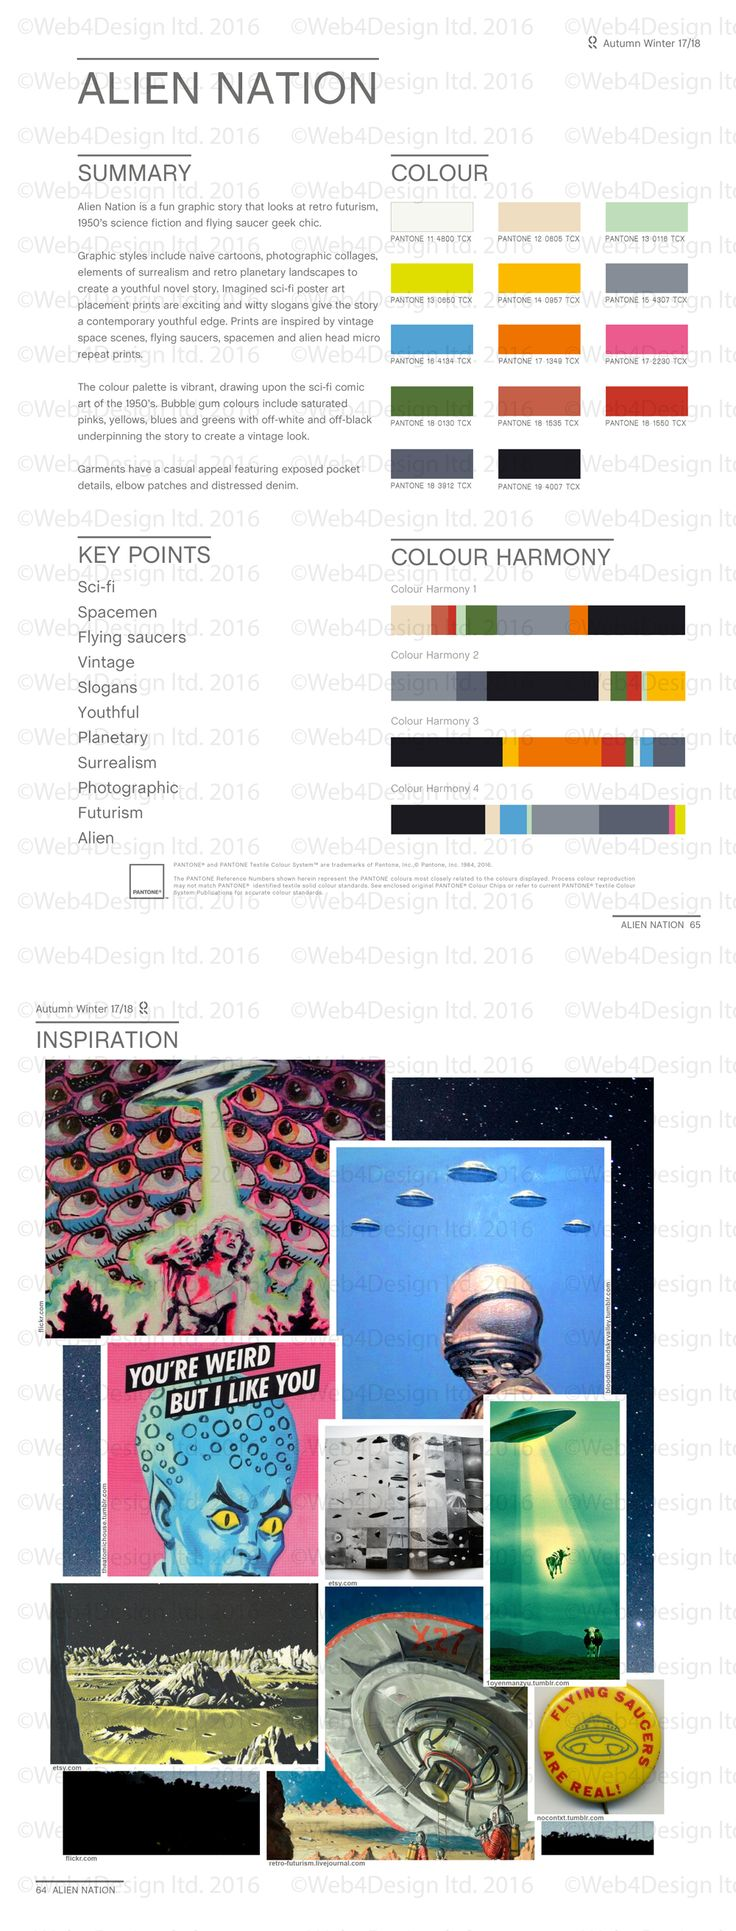 Style Right Alien Nation AW1718 Trend Board